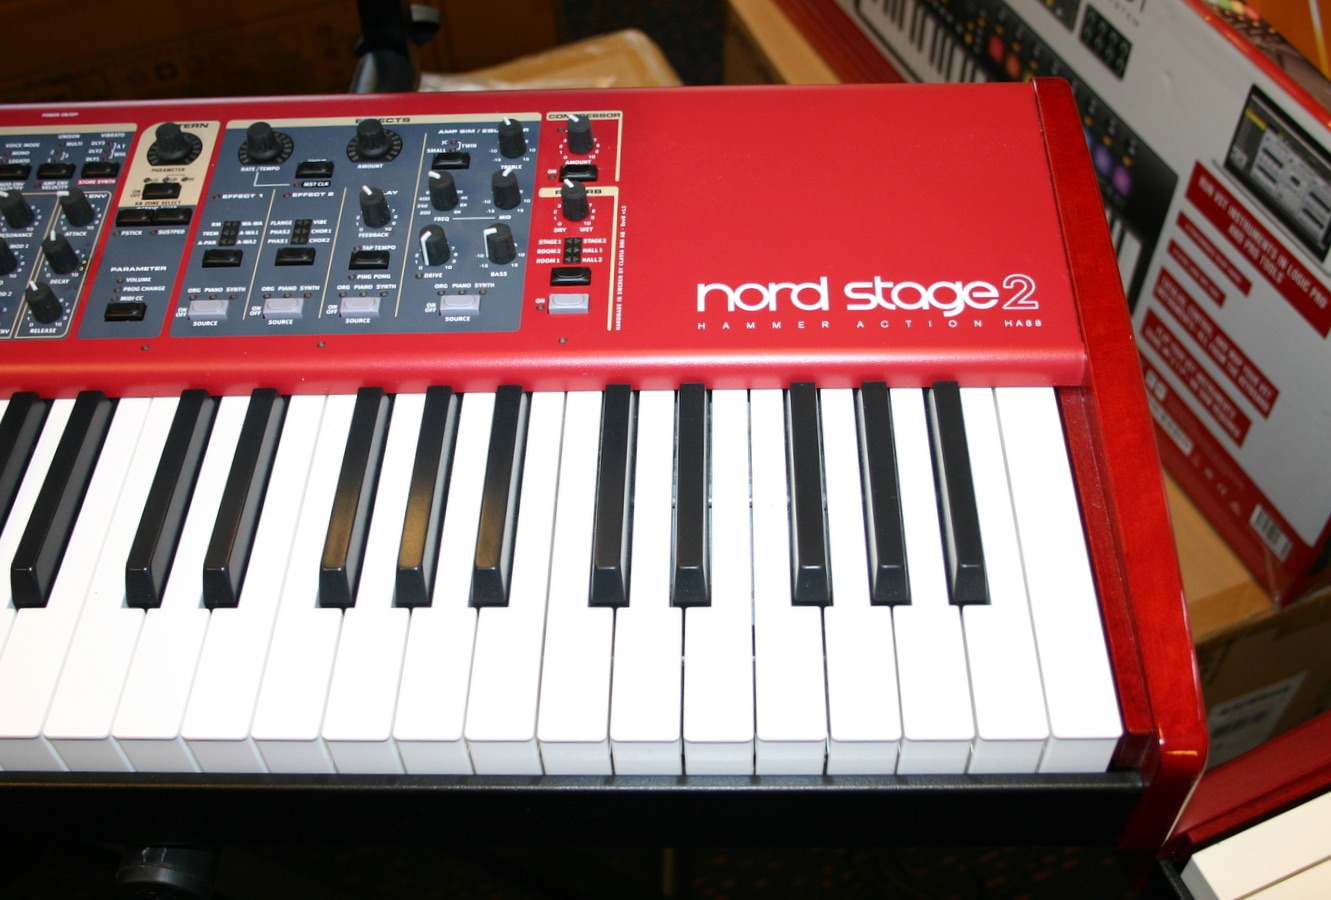 Nord Stage 2 Occasion : nord stage 2 ha88 occasion in perfecte staat studio de dijk ~ Maxctalentgroup.com Avis de Voitures